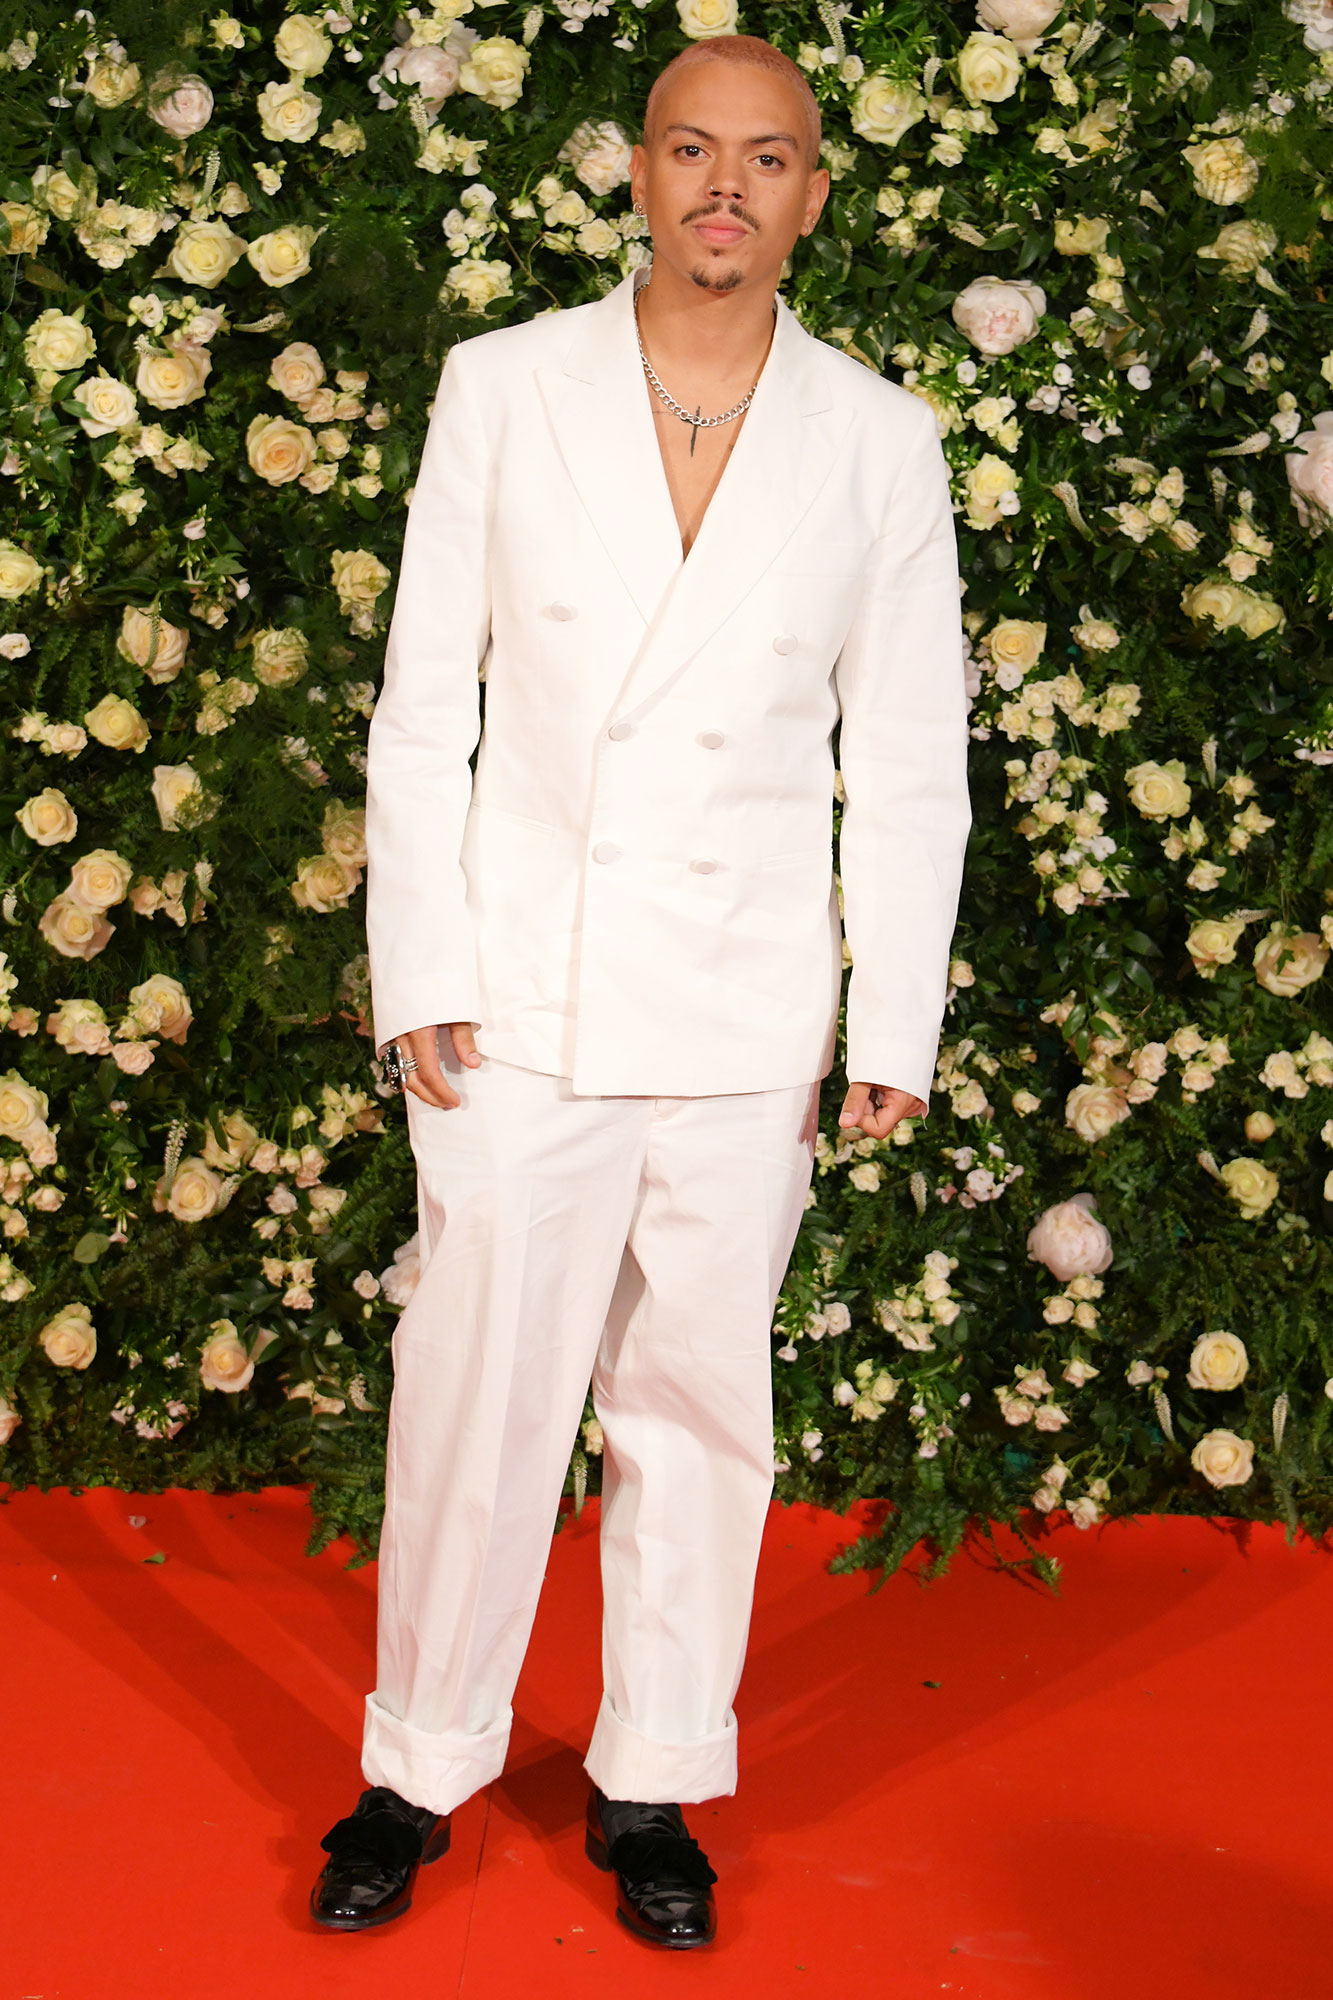 Evan Ross Cannes Film Festival 2019 Most Stylish Guys Red Carpet - White hot is about the only way describe the musician's double-breasted jacket and trousers combo at the Filmmakers Dinner on Friday, May 17.